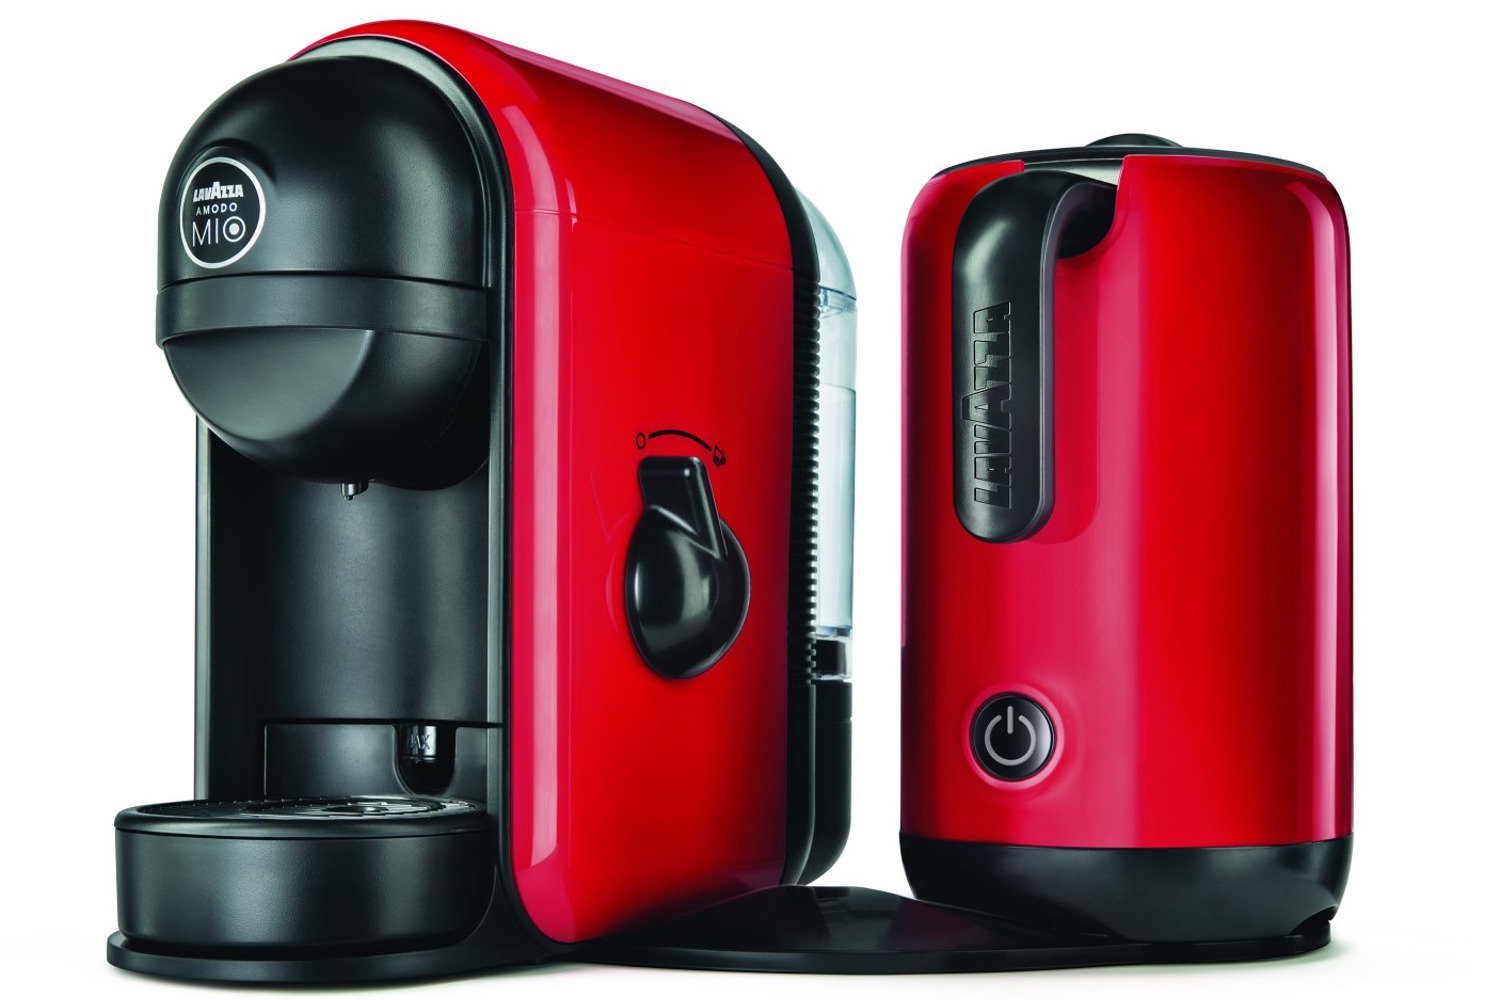 Caffe Latte Lavazza Minu Caffe Latte Coffee Machine Red